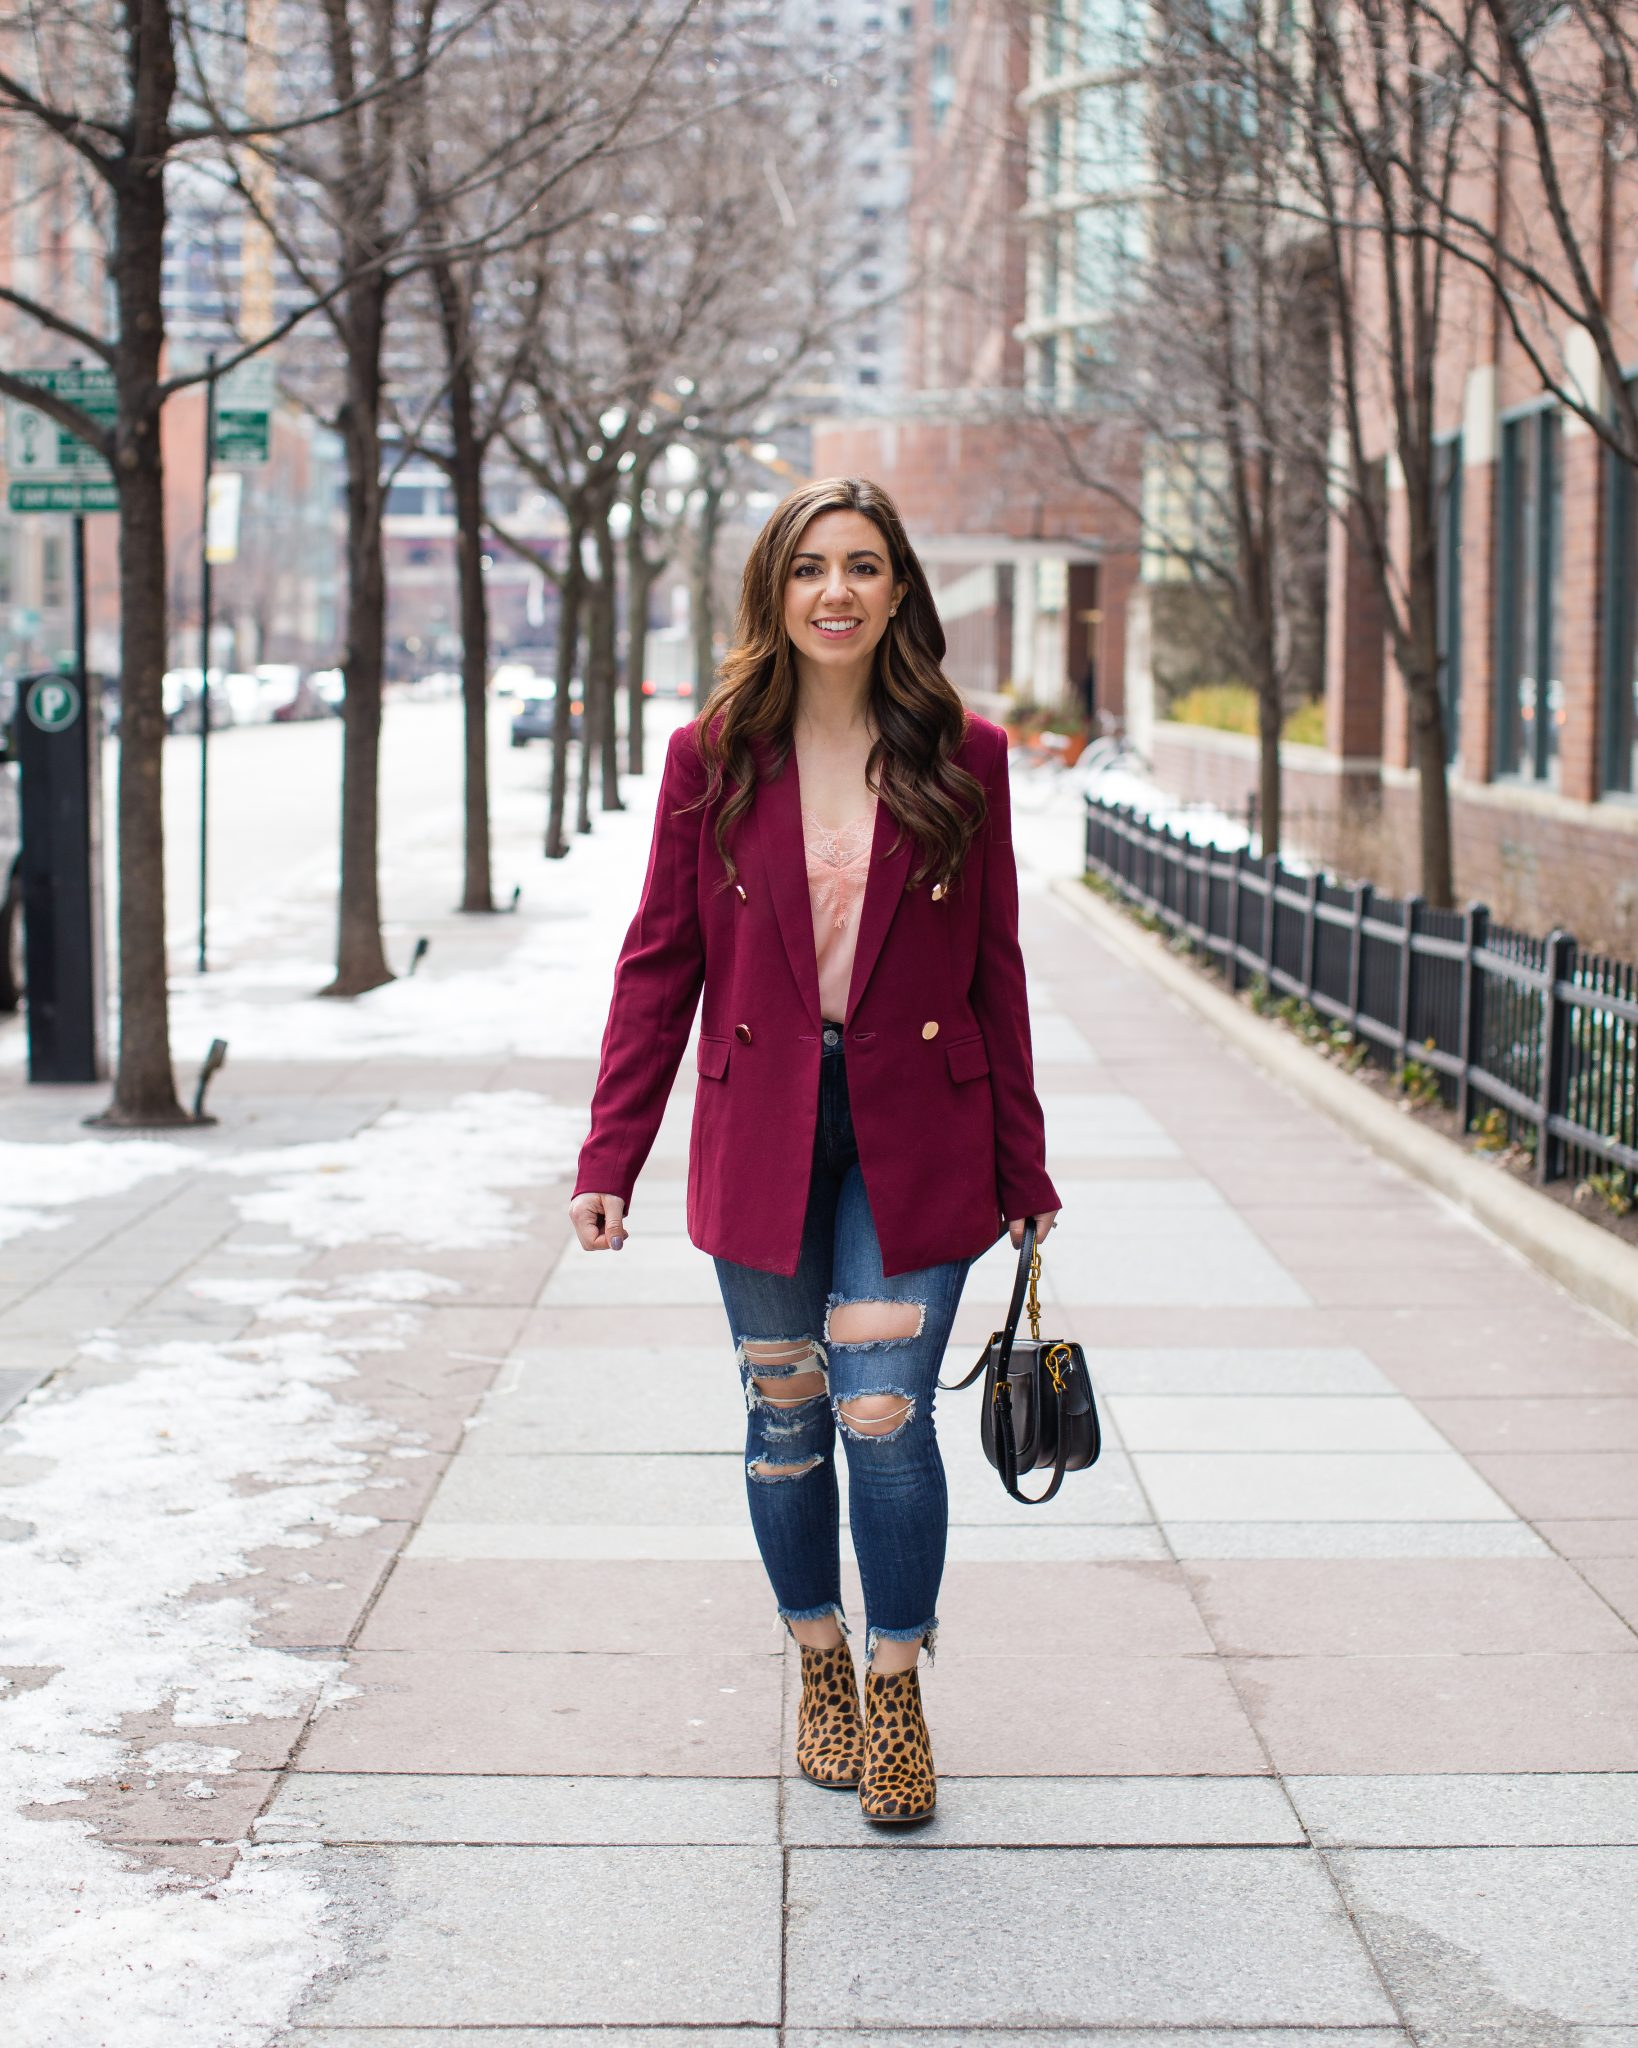 Lifestyle blogger Roxanne of Glass of Glam wearing a burgundy boyfriend blazer, Express denim, leopard booties, lace cami, and a Chloe Nile bag dupe - Nordstrom Burgundy Blazer  by popular Chicago fashion blogger Glass of Glam